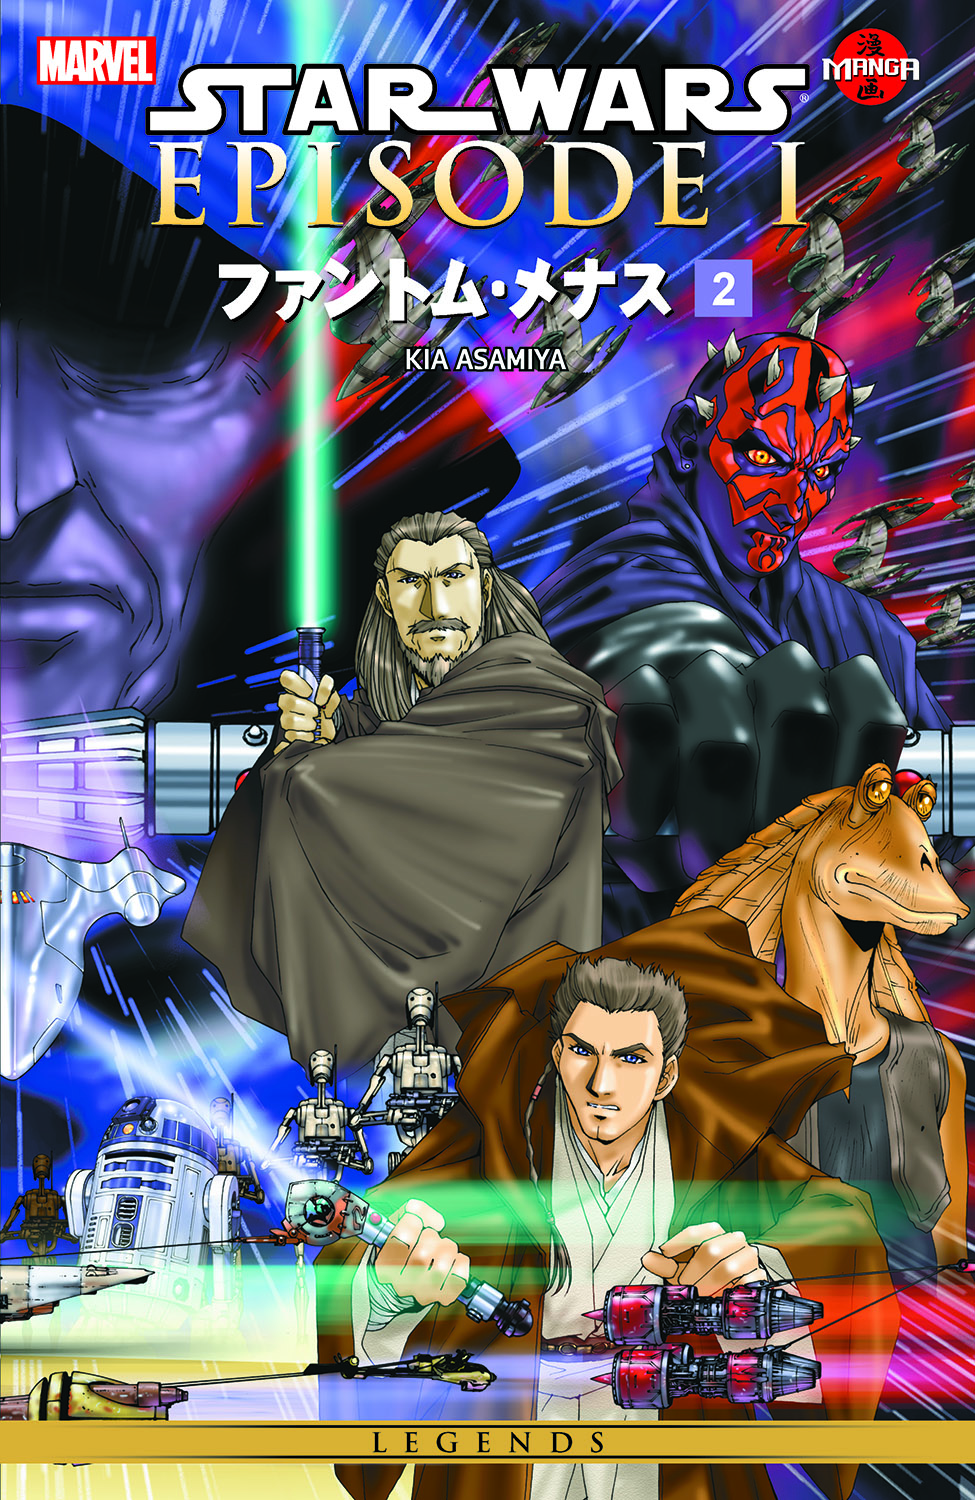 Star Wars: Episode I - The Phantom Menace Manga (1999) #2